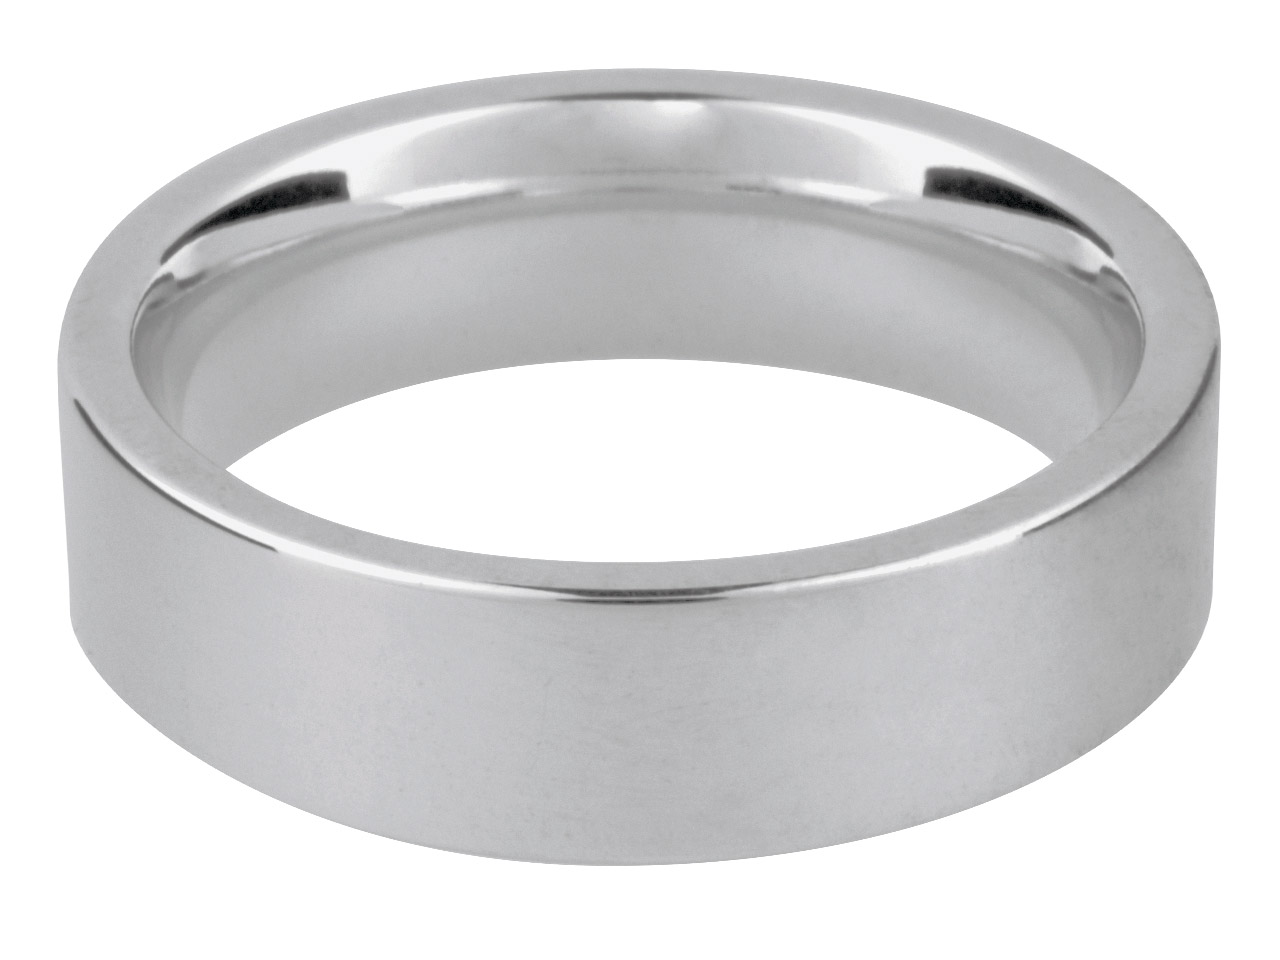 Platinum Easy Fit Wedding Ring     4.0mm J 8.7gms Heavy Weight        Hallmarked Wall Thickness 1.97mm